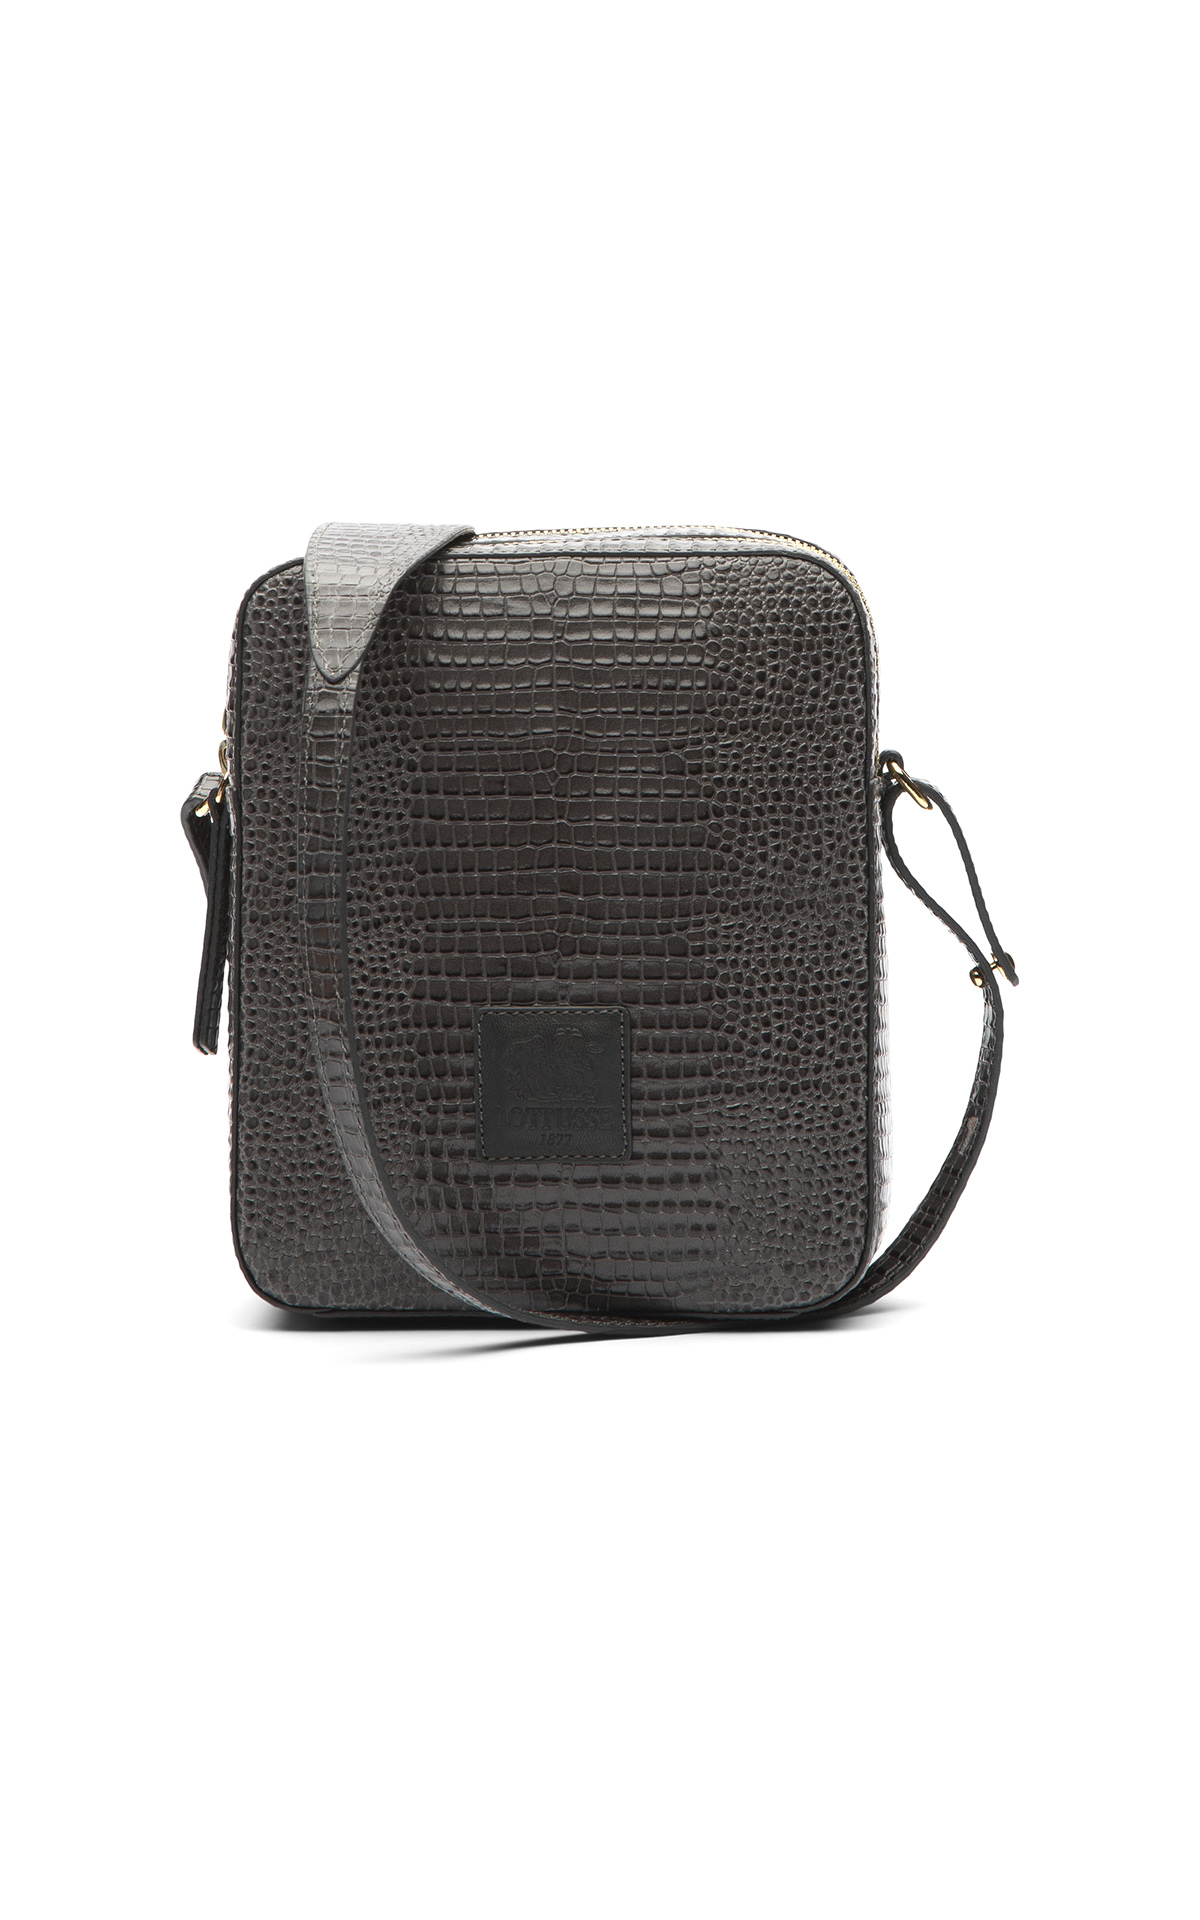 Grey croco shoulder bag Lottusse